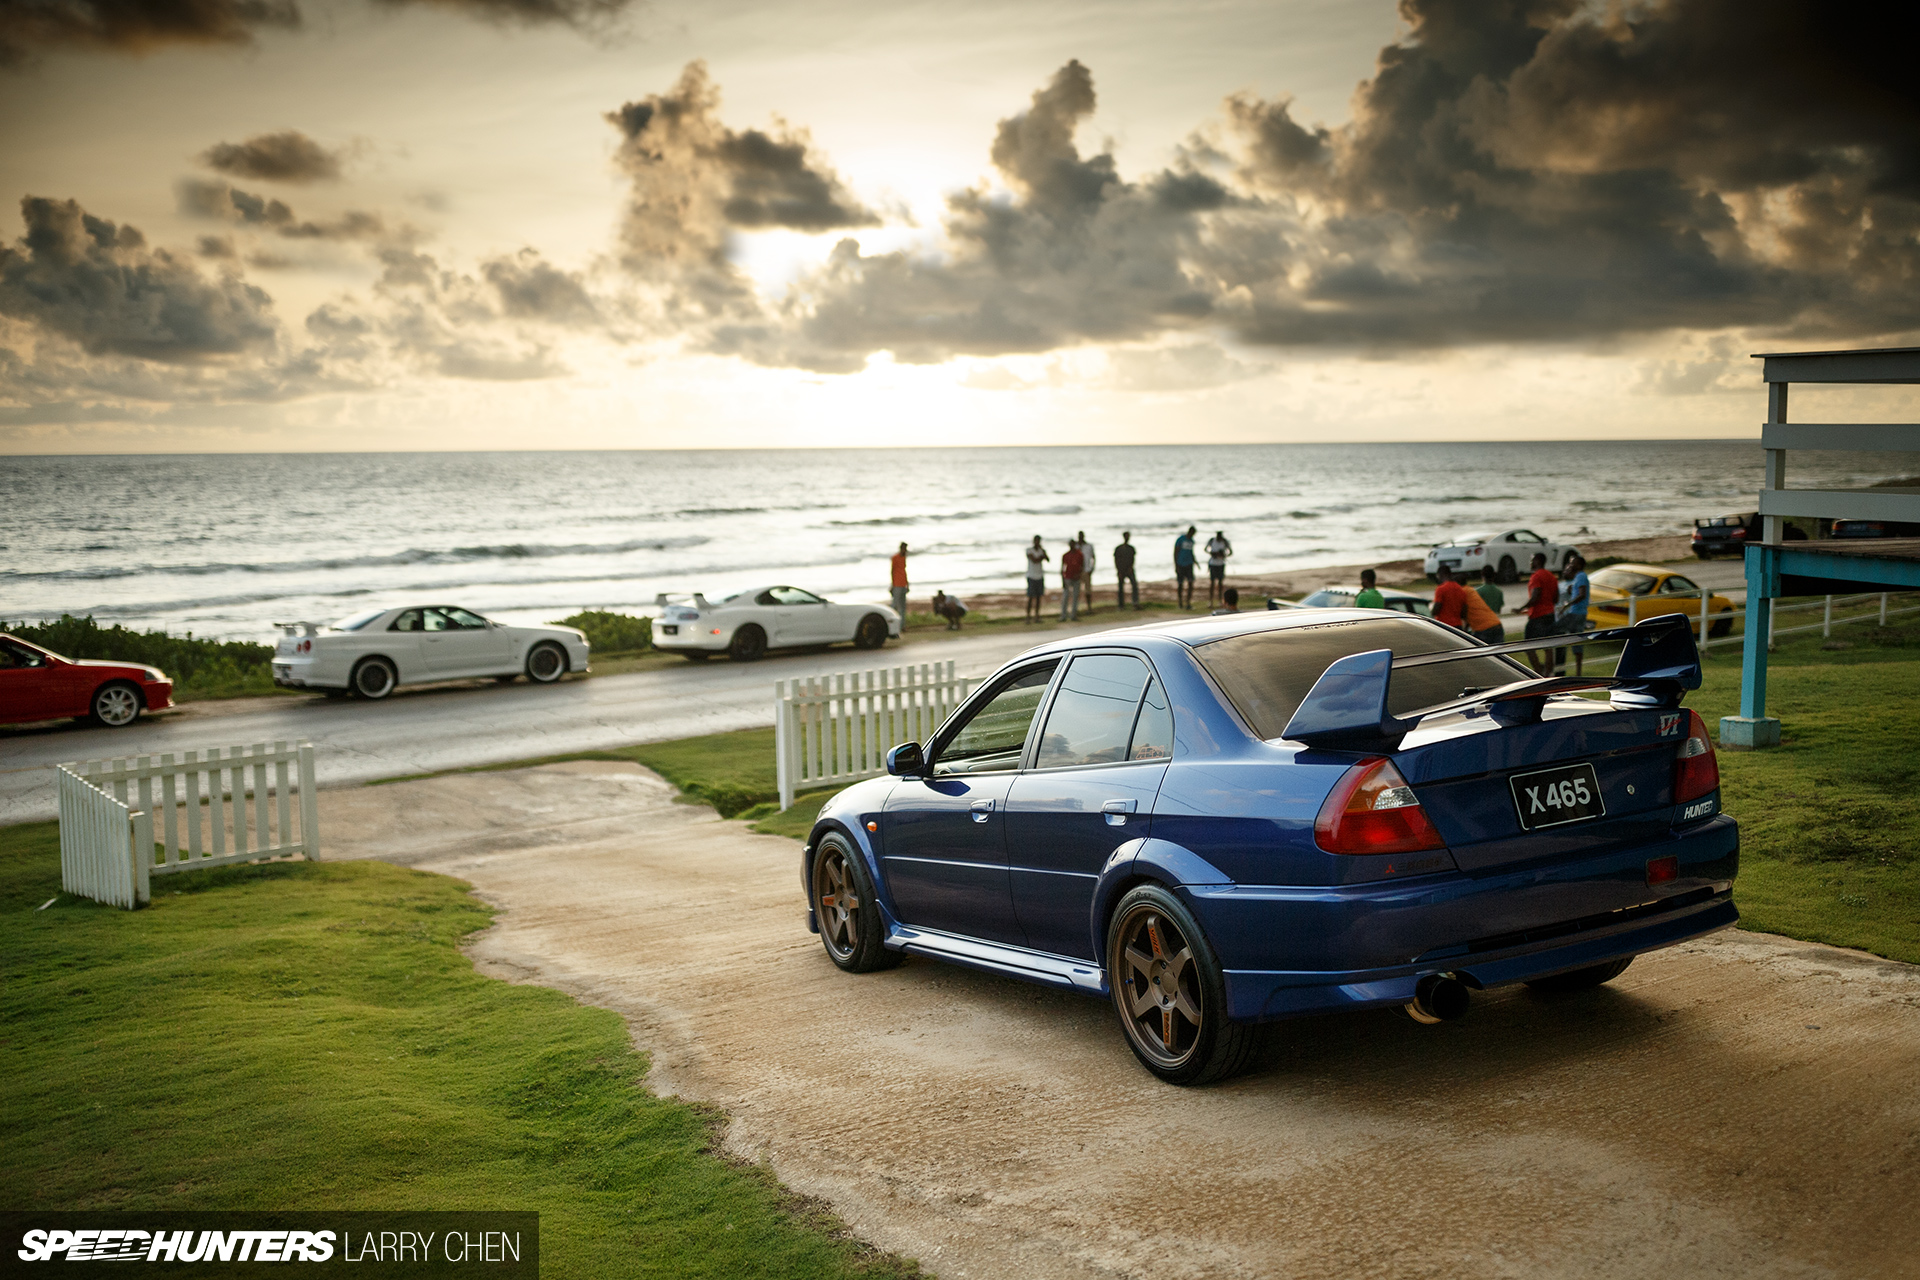 Hidden Gems In The Caribbean Barbados Car Culture Speedhunters